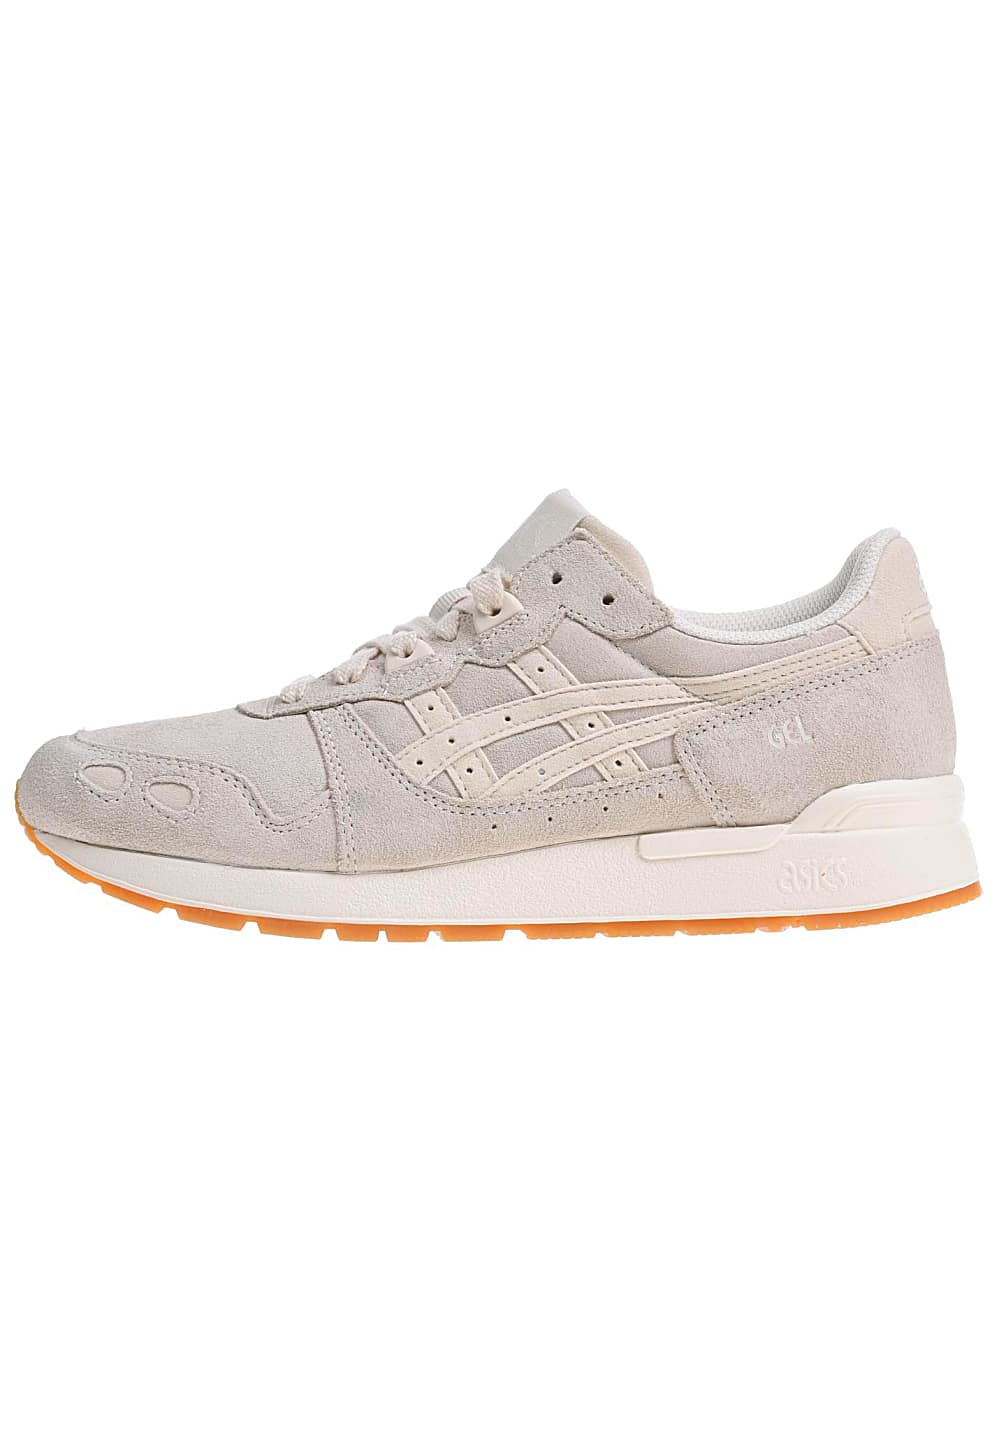 ASICS Tiger Gel-Lyte - Sneaker für Damen - Beige - Planet Sports